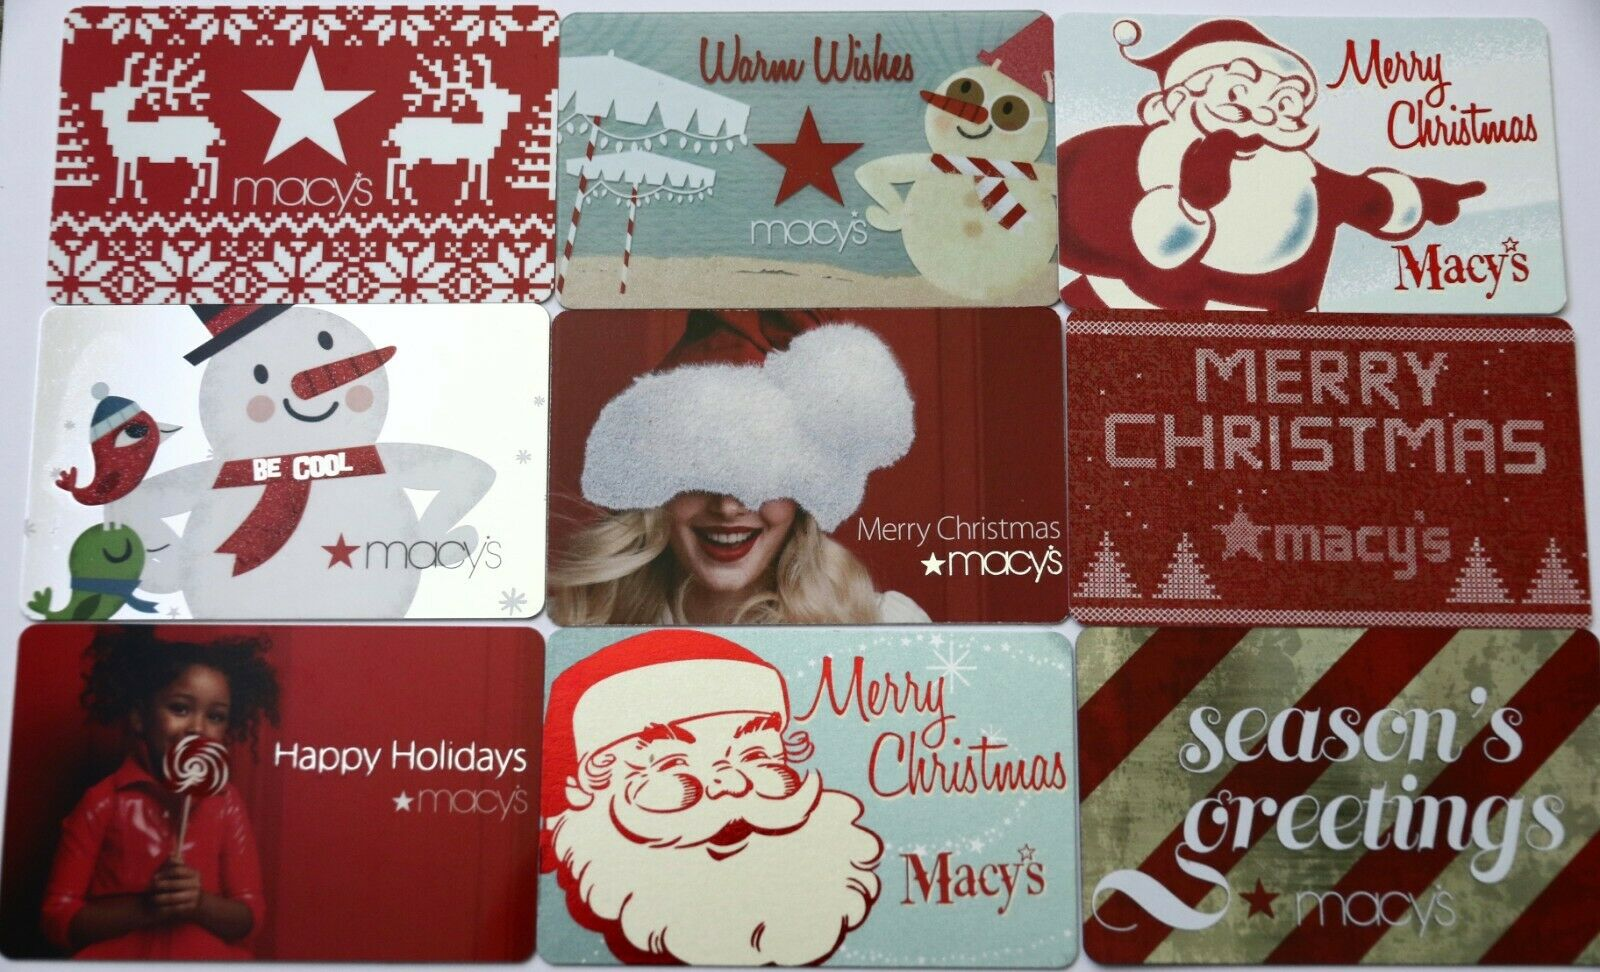 9 Macy s Department Store Christmas Holidays Empty Gift Card Collectible Lot New - $7.99